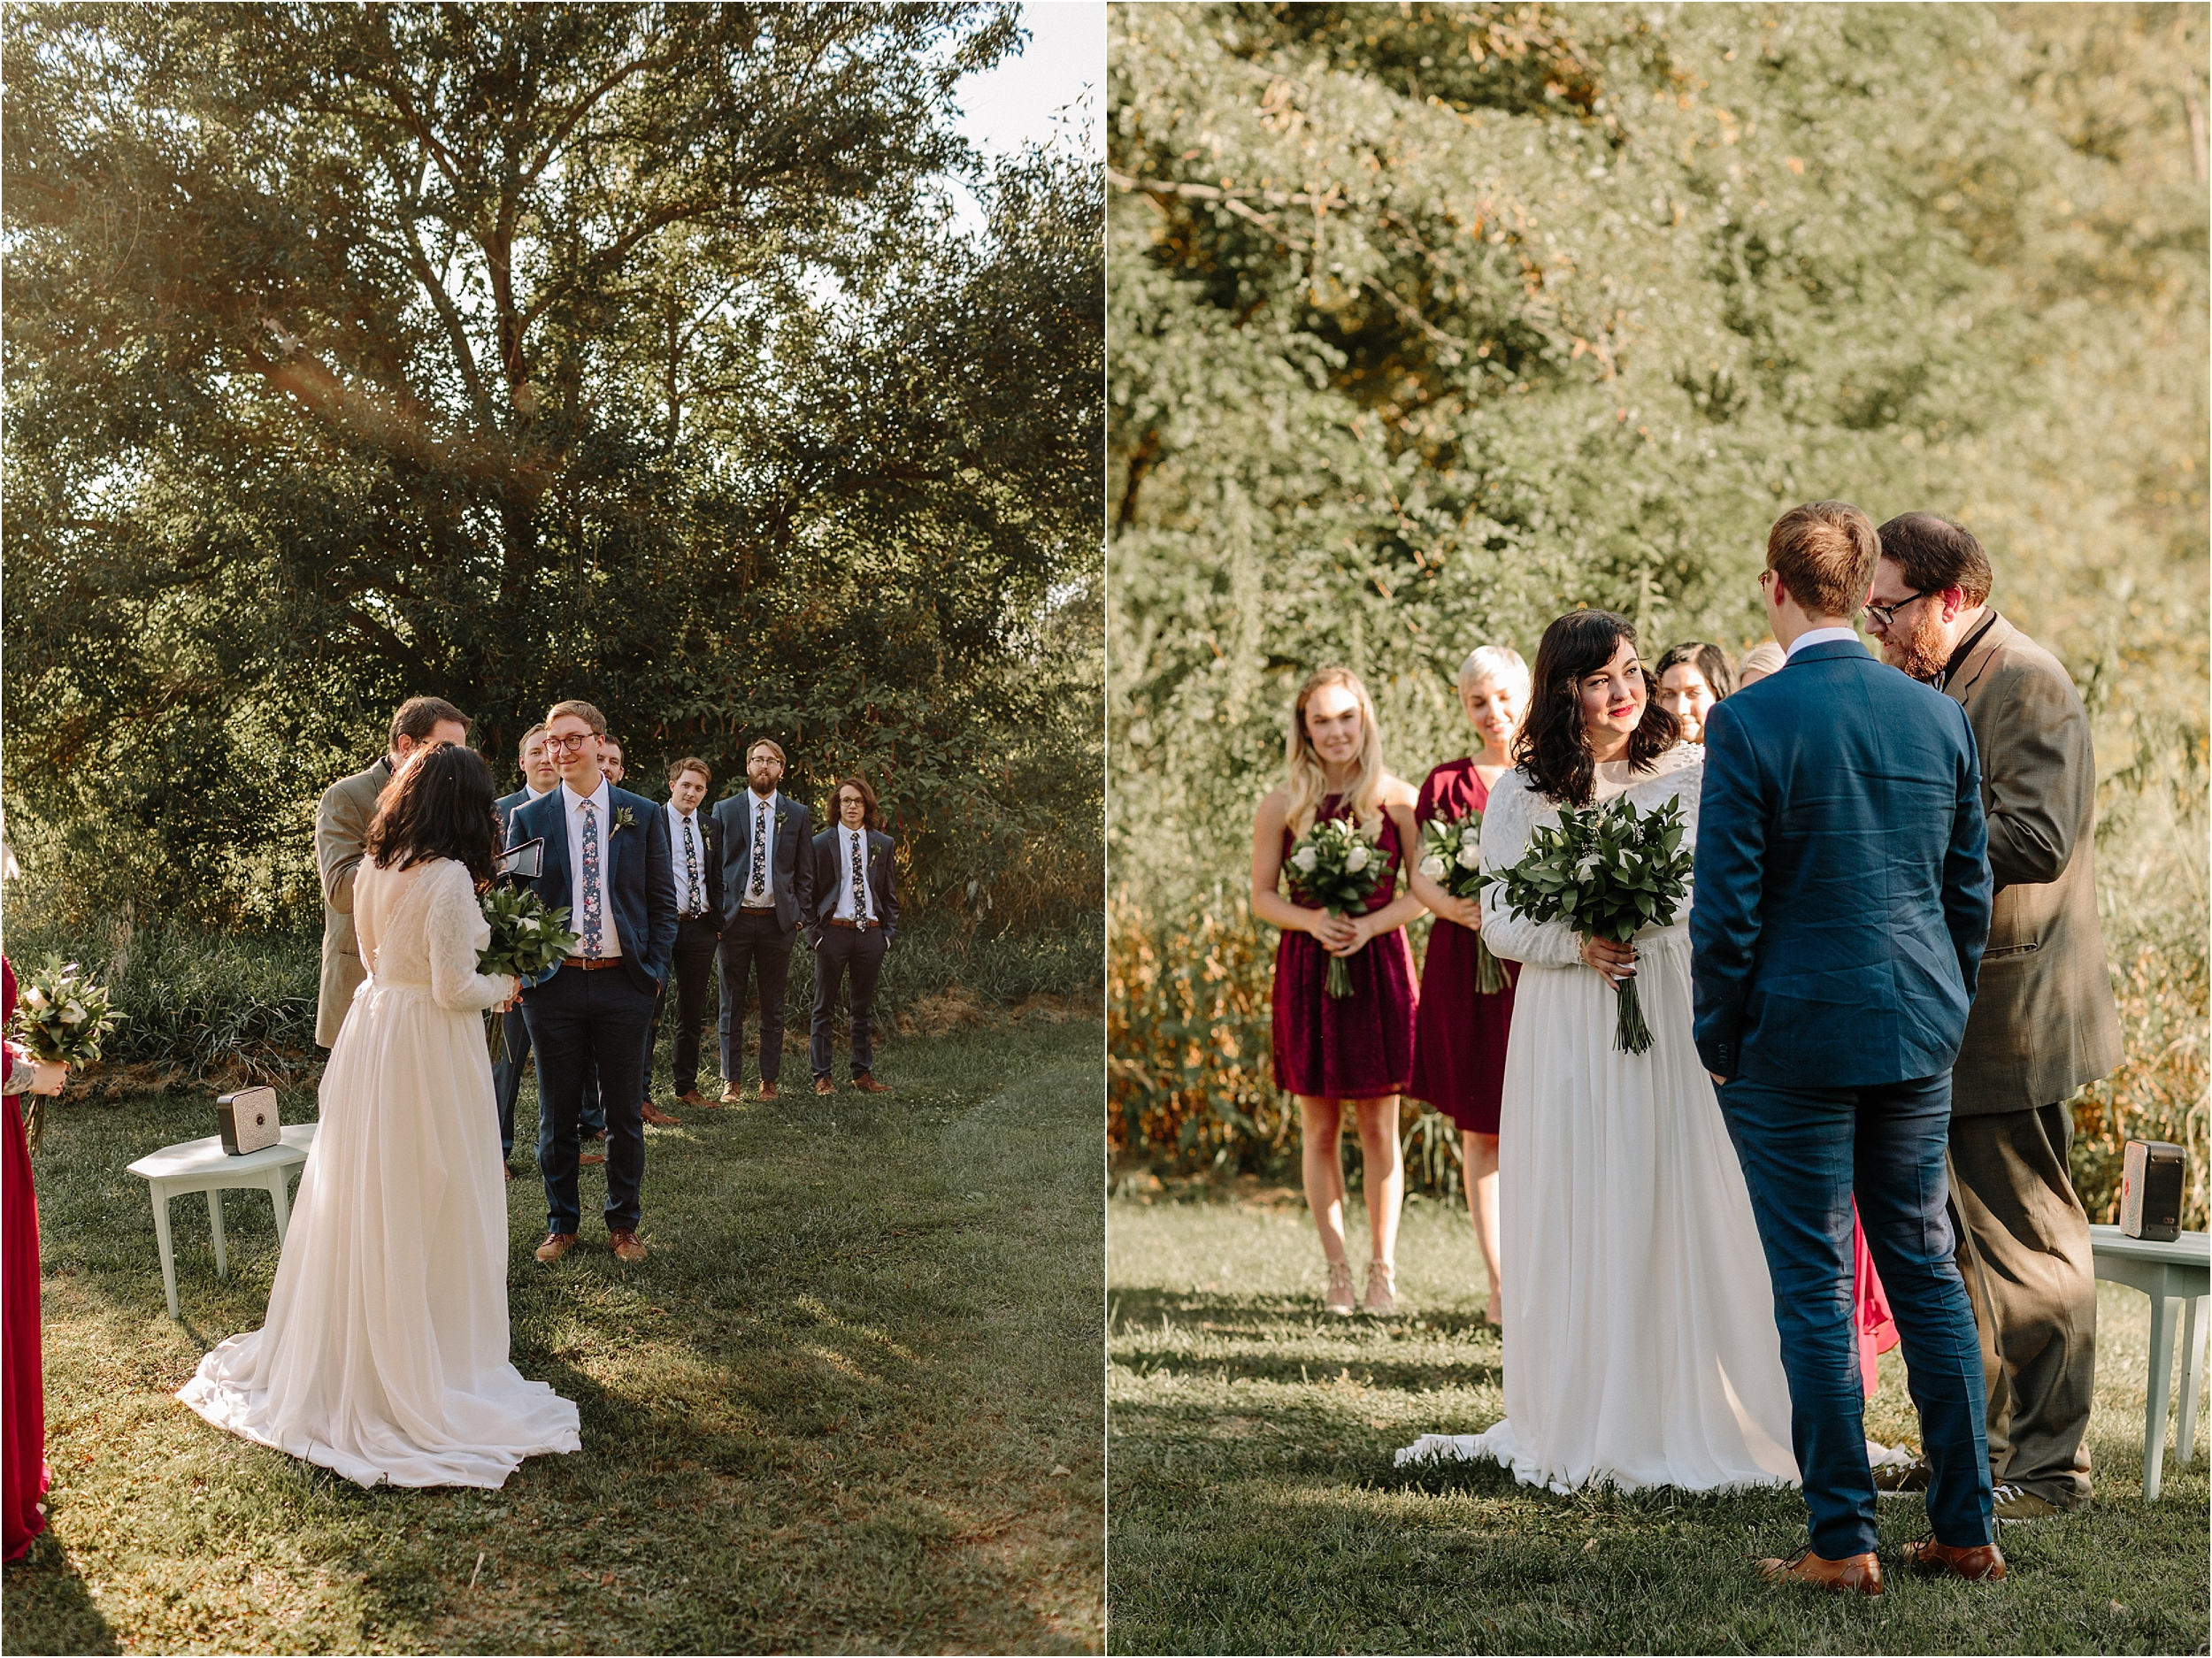 Valparaiso Indiana Wedding Photographer